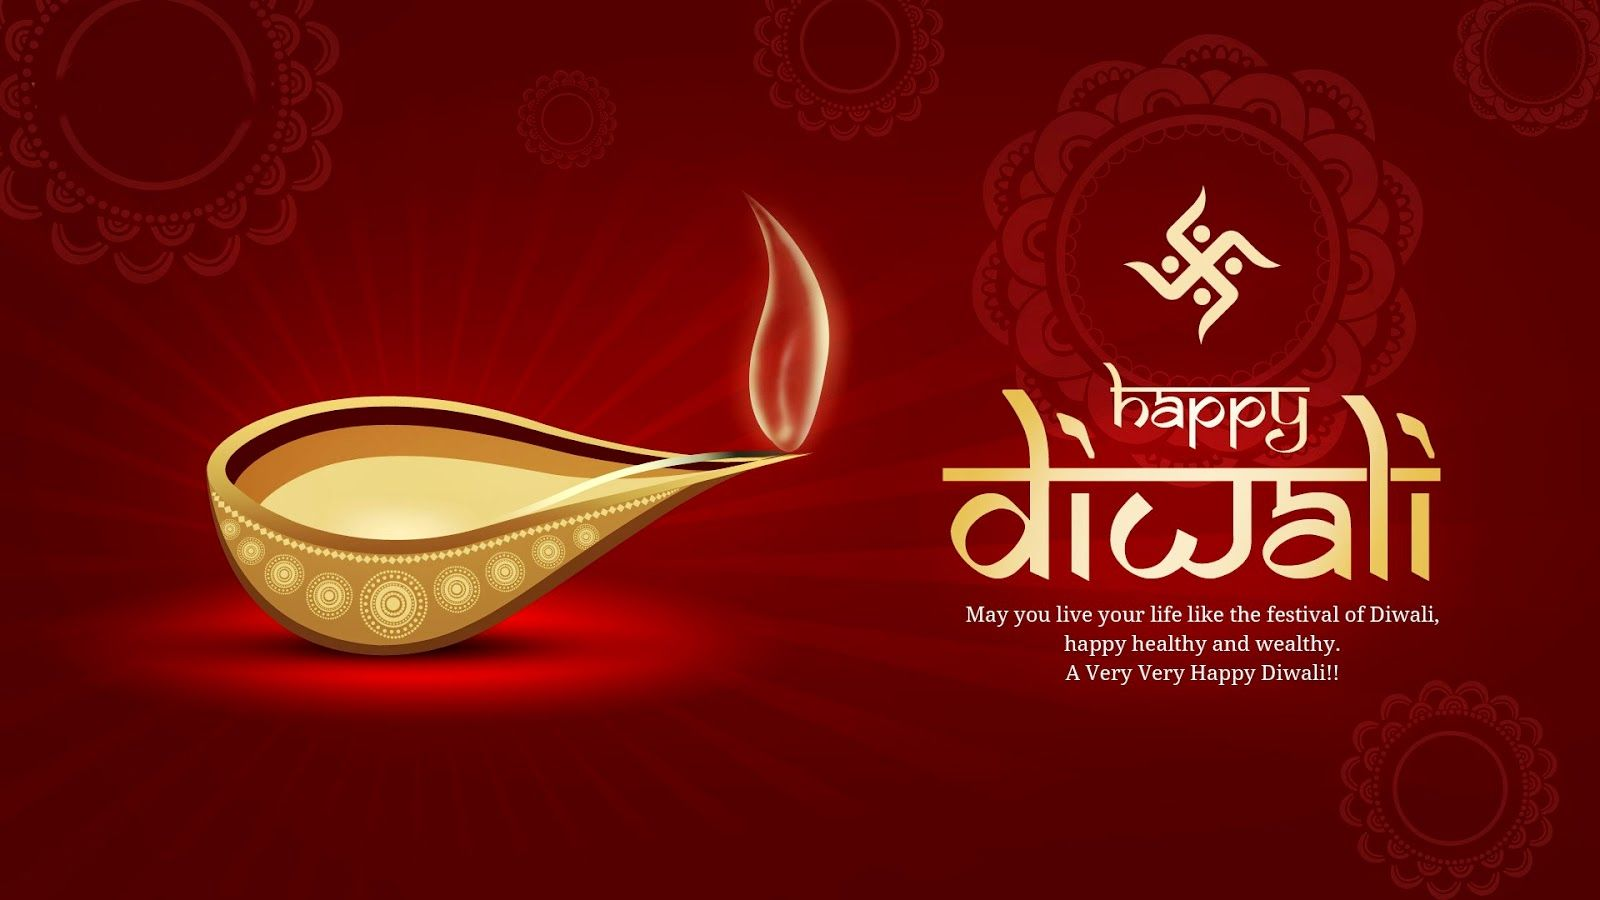 Free Happy Diwali Quotes In Hindi For Share On Whatsapp Facebook To